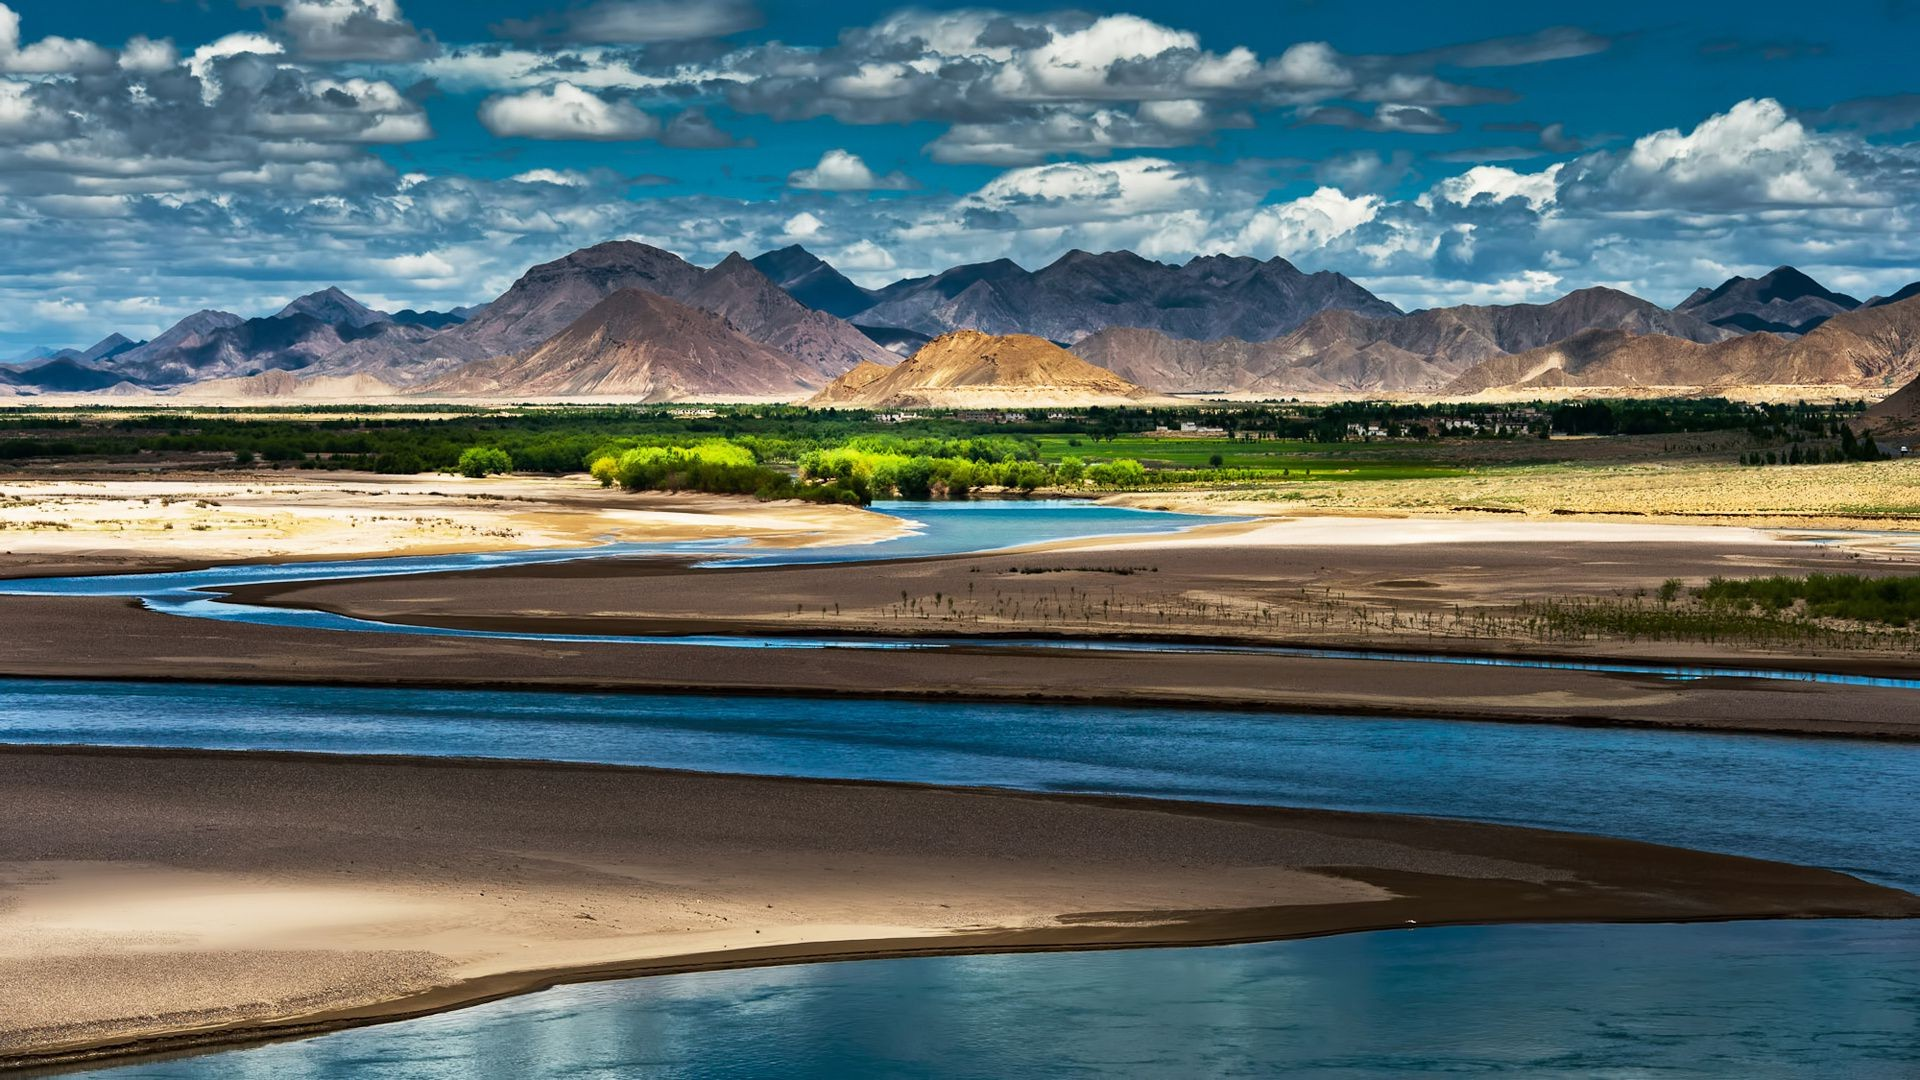 sky light river clouds mountains Tibet the shade of the oasis China